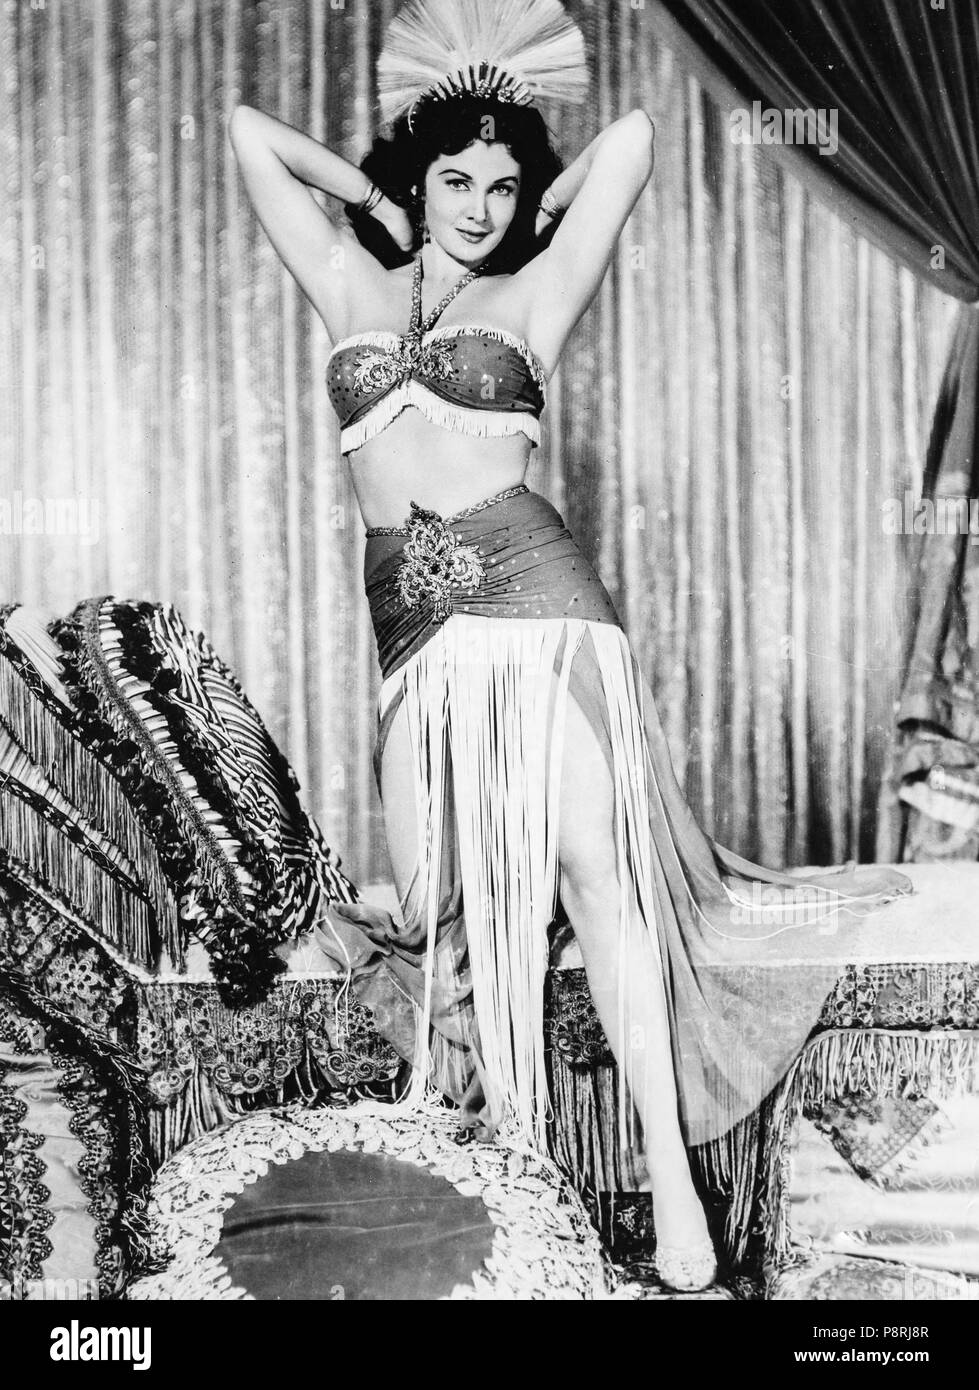 Rhonda Fleming, peu d'egypte, 1951 Photo Stock